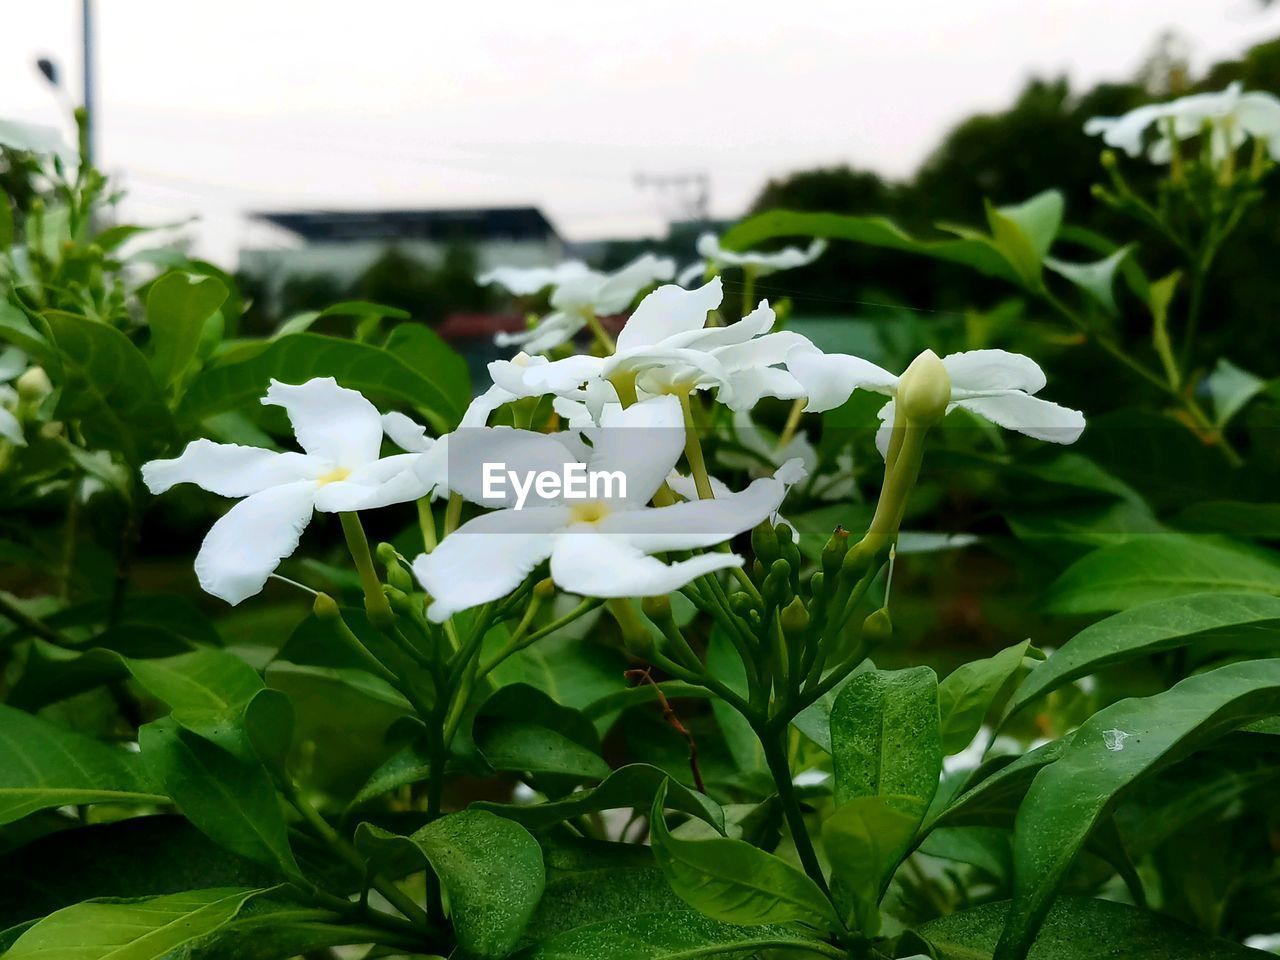 flower, plant, leaf, growth, nature, beauty in nature, white color, petal, green color, freshness, fragility, no people, blooming, outdoors, close-up, day, flower head